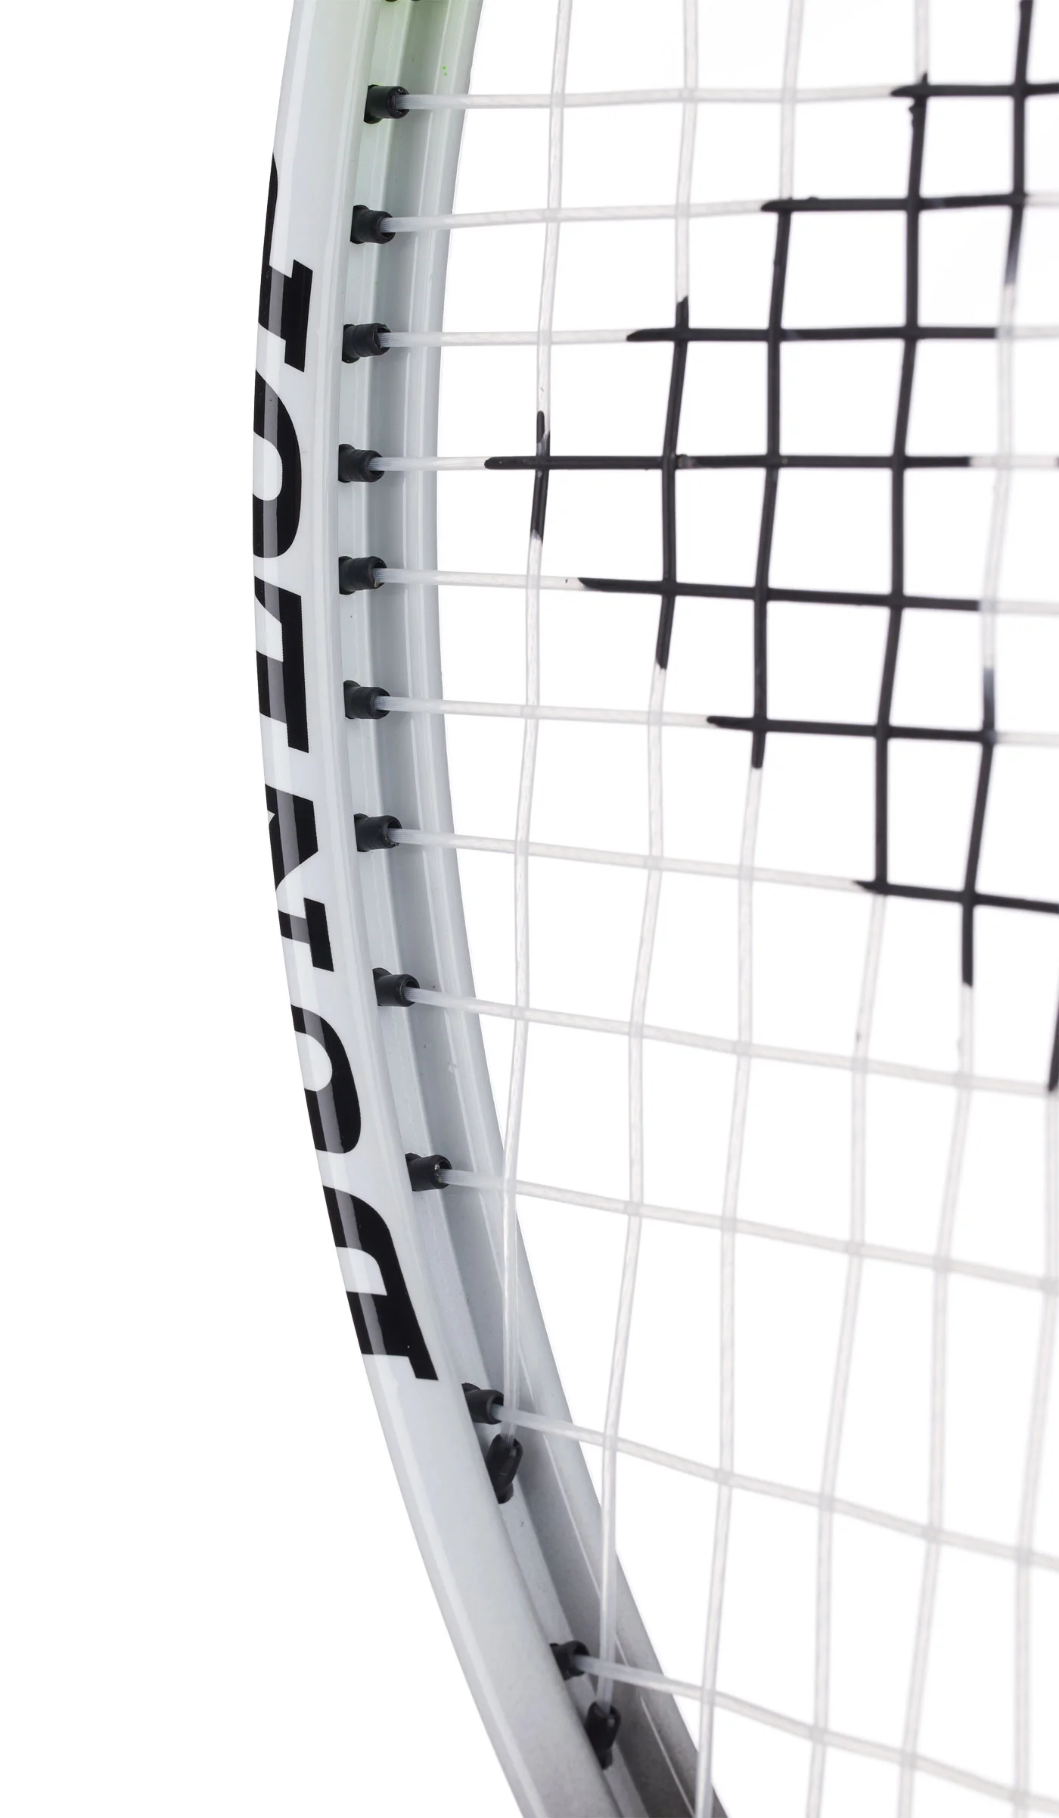 Dunlop Nitro Junior Racquet For Kids - Ages 3-5 Years